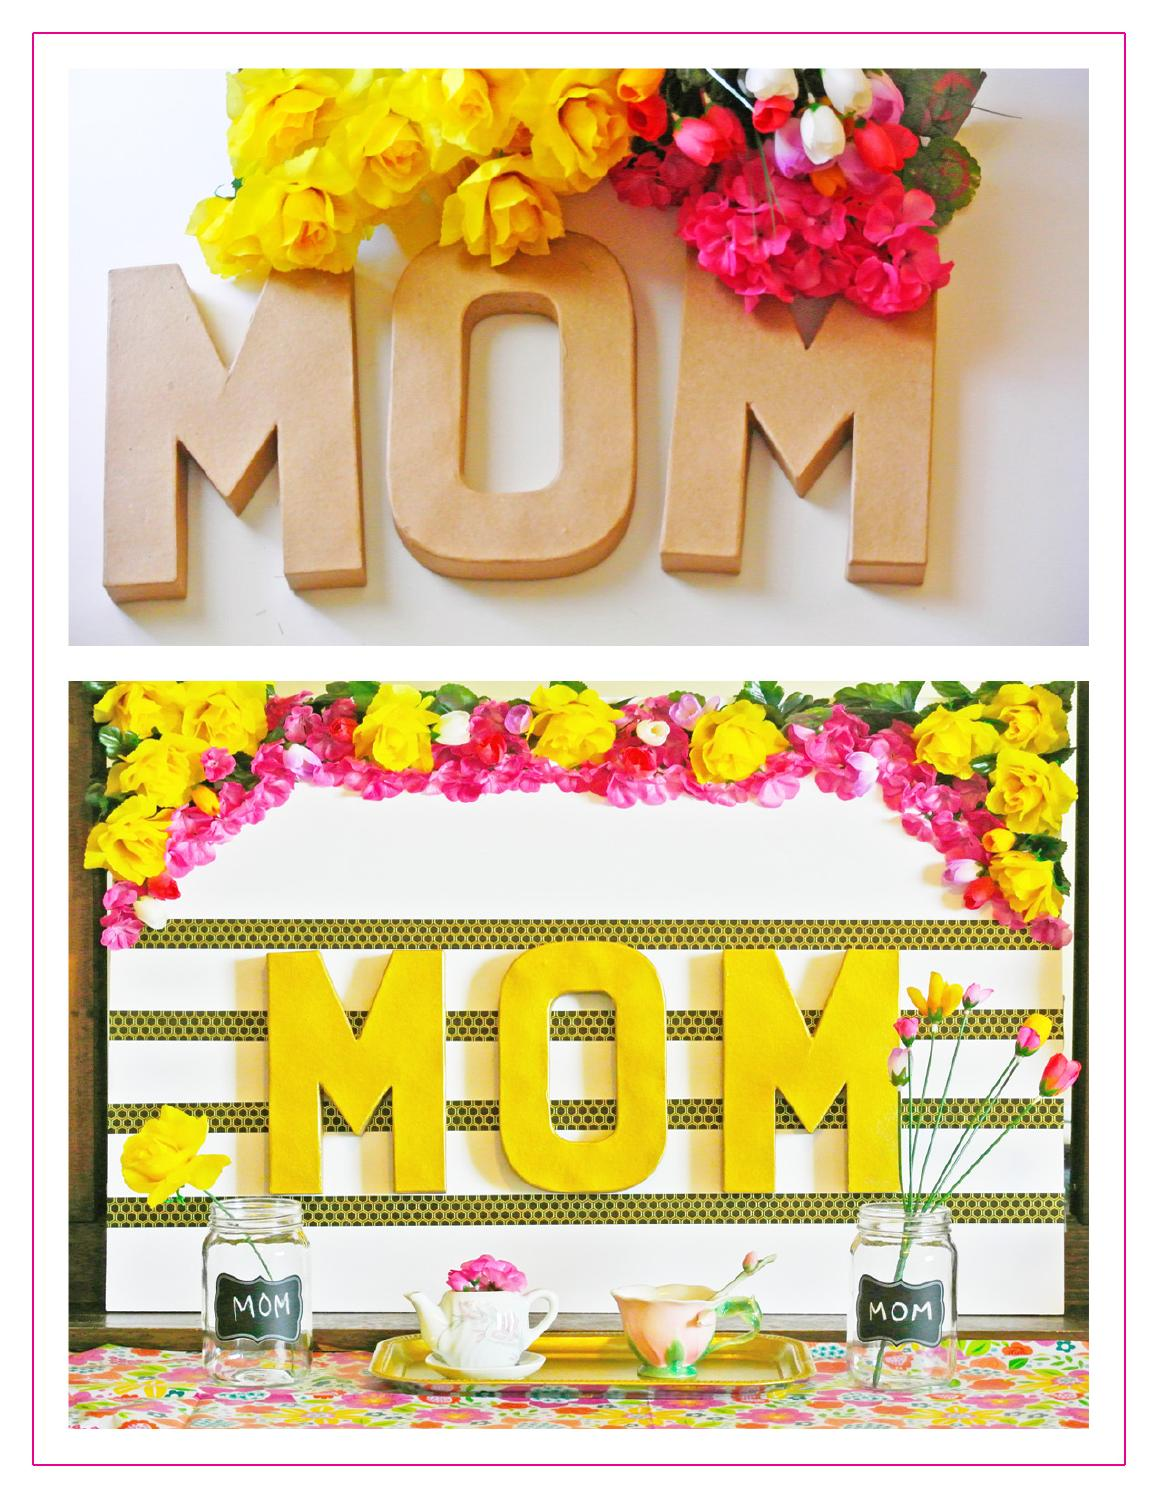 Mom, Flower board, Party